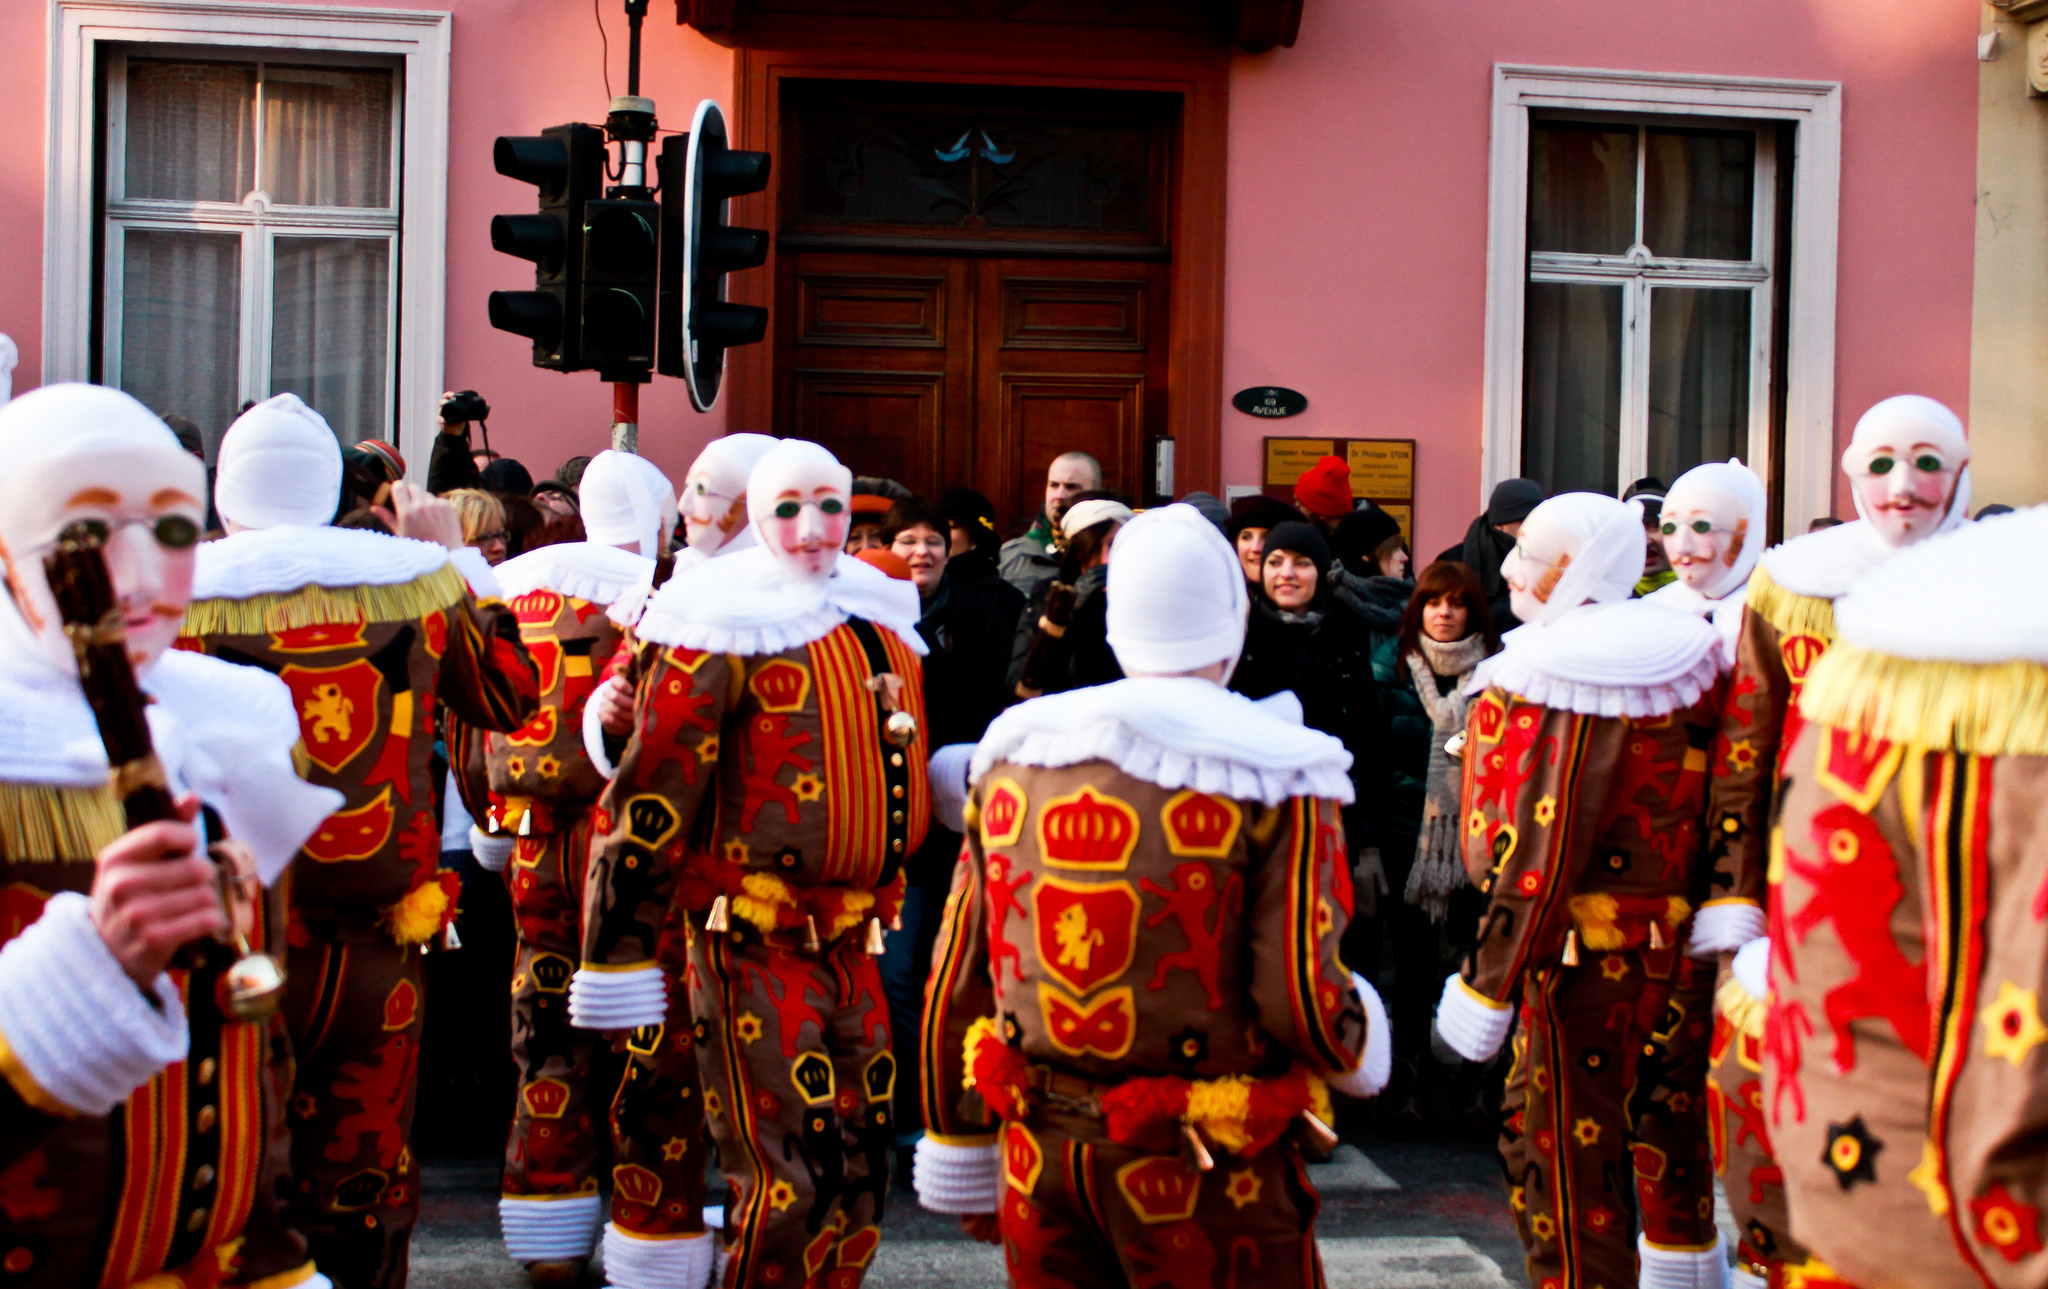 A Classic Belgian Wedding: An Introduction To Belgian Traditional Dress